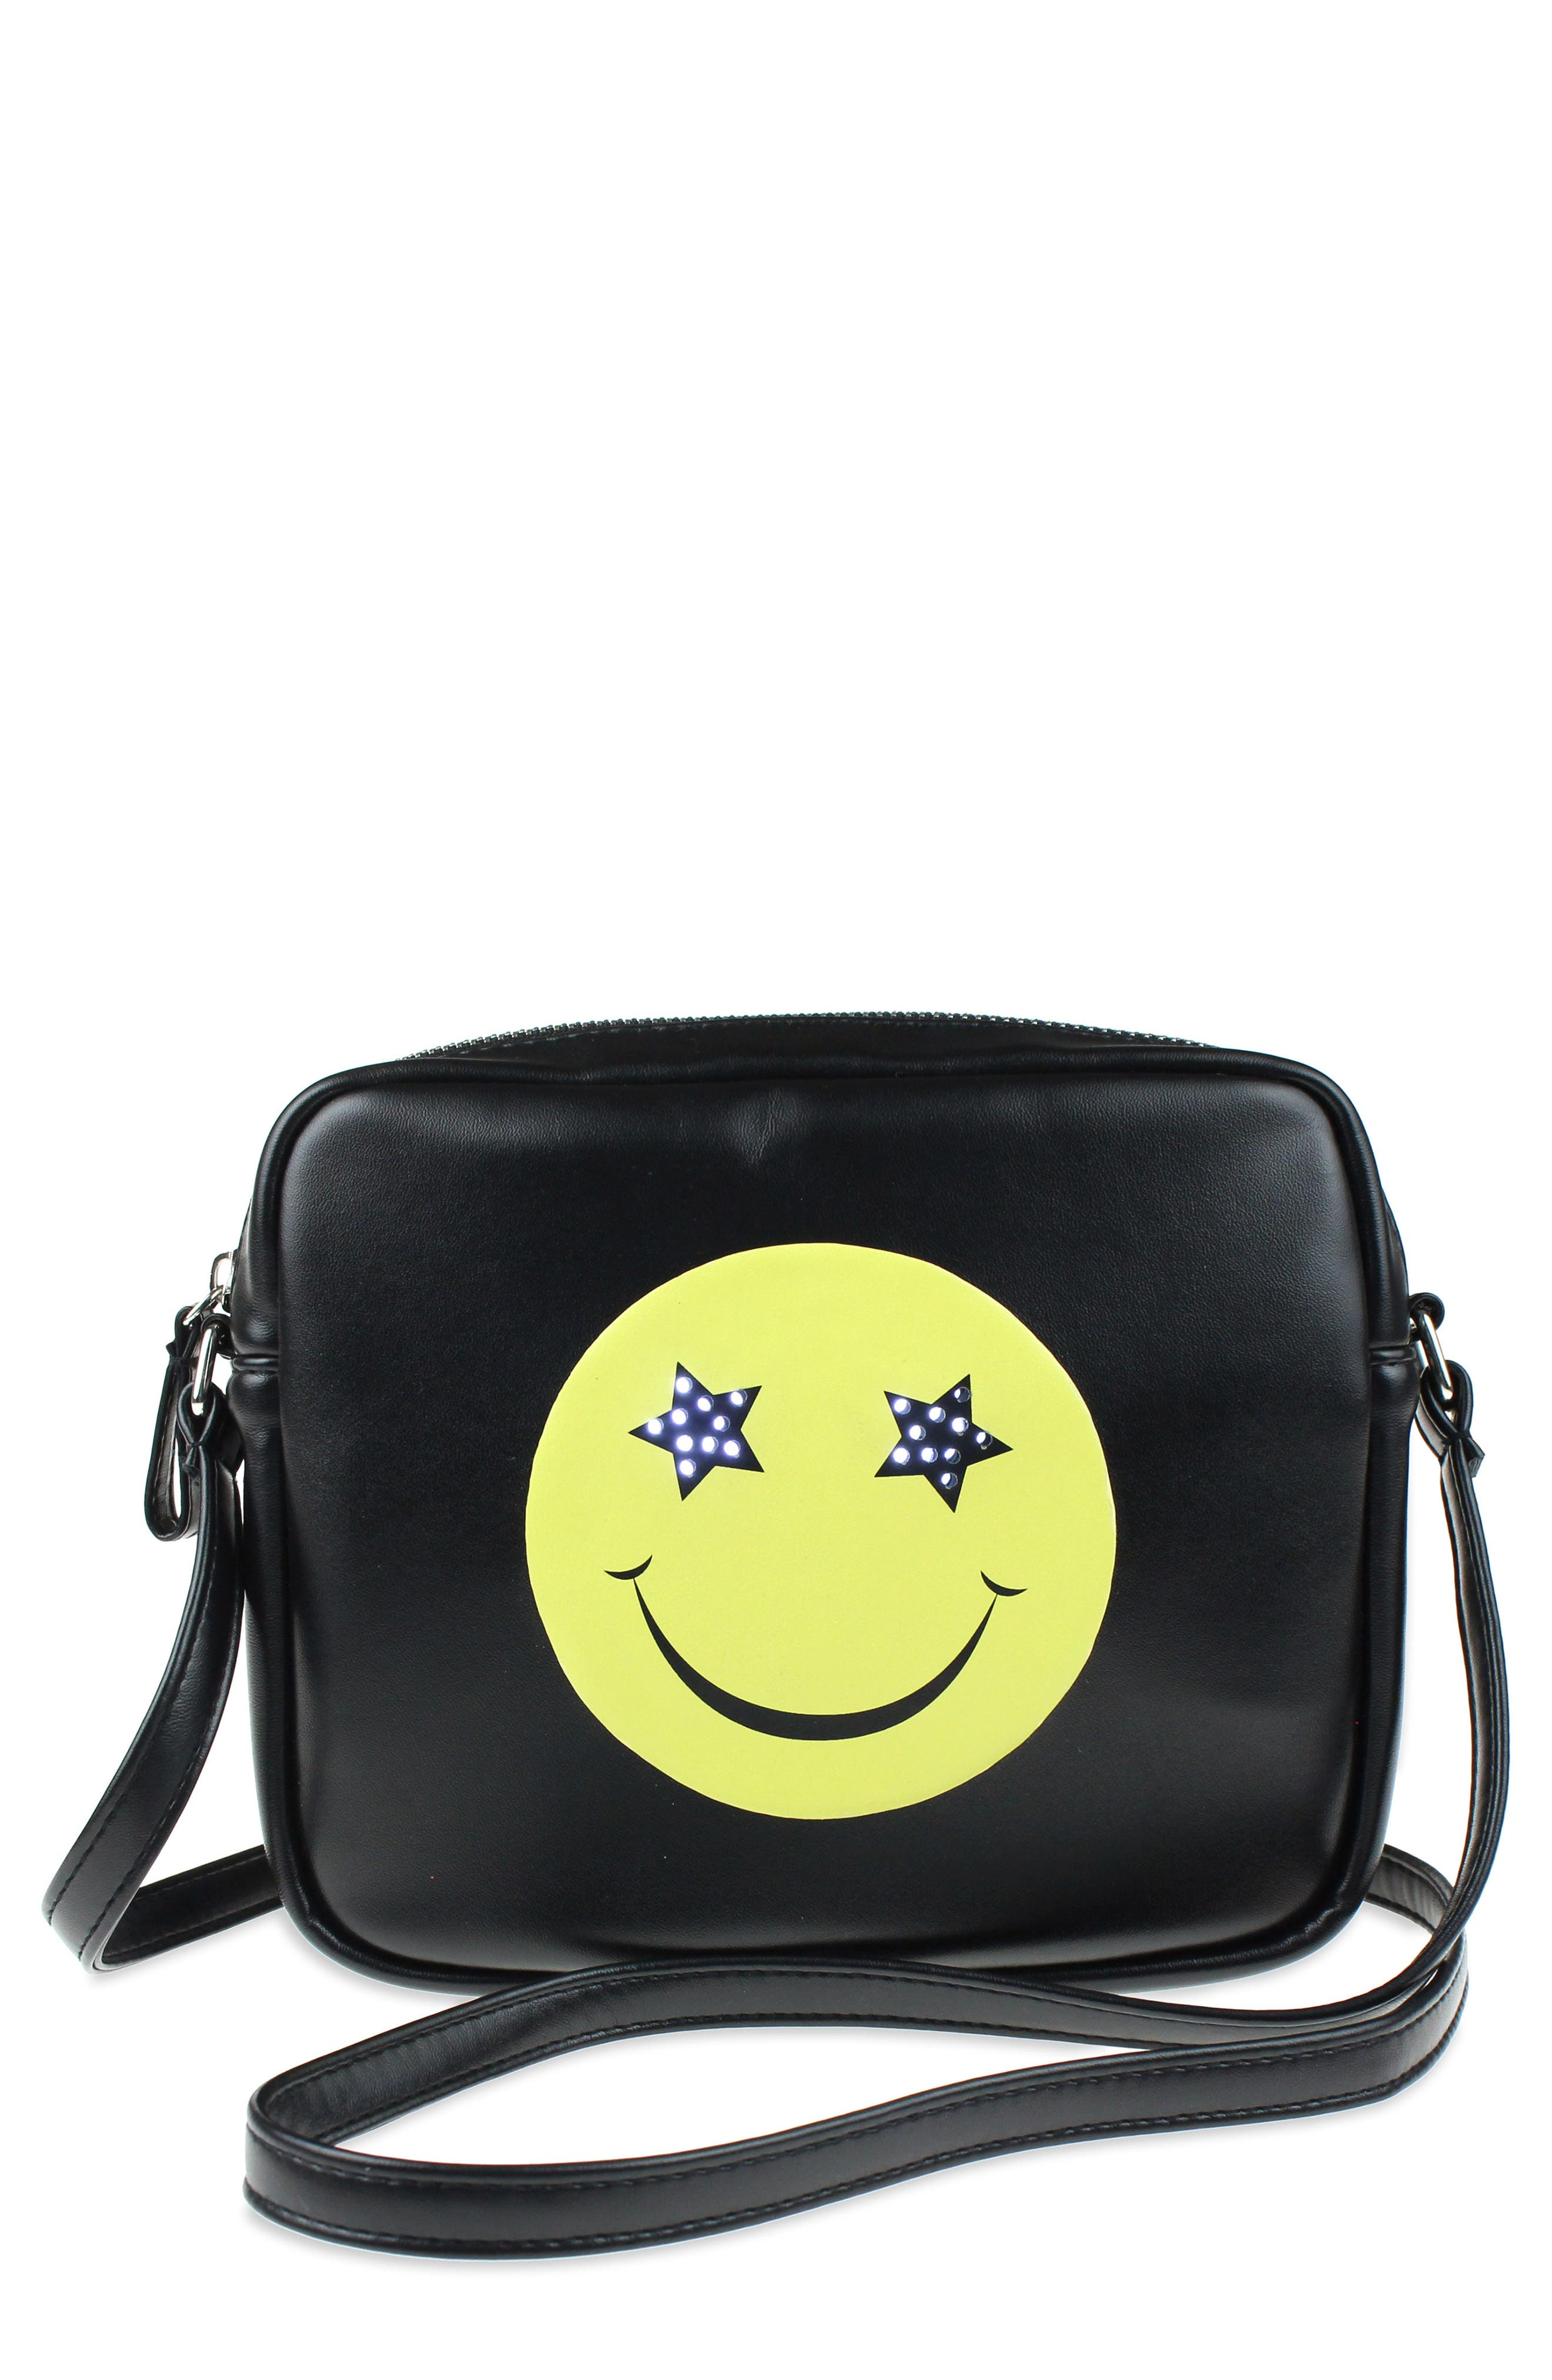 LED Light-Up Smiley Faux Leather Crossbody Bag,                             Main thumbnail 1, color,                             002